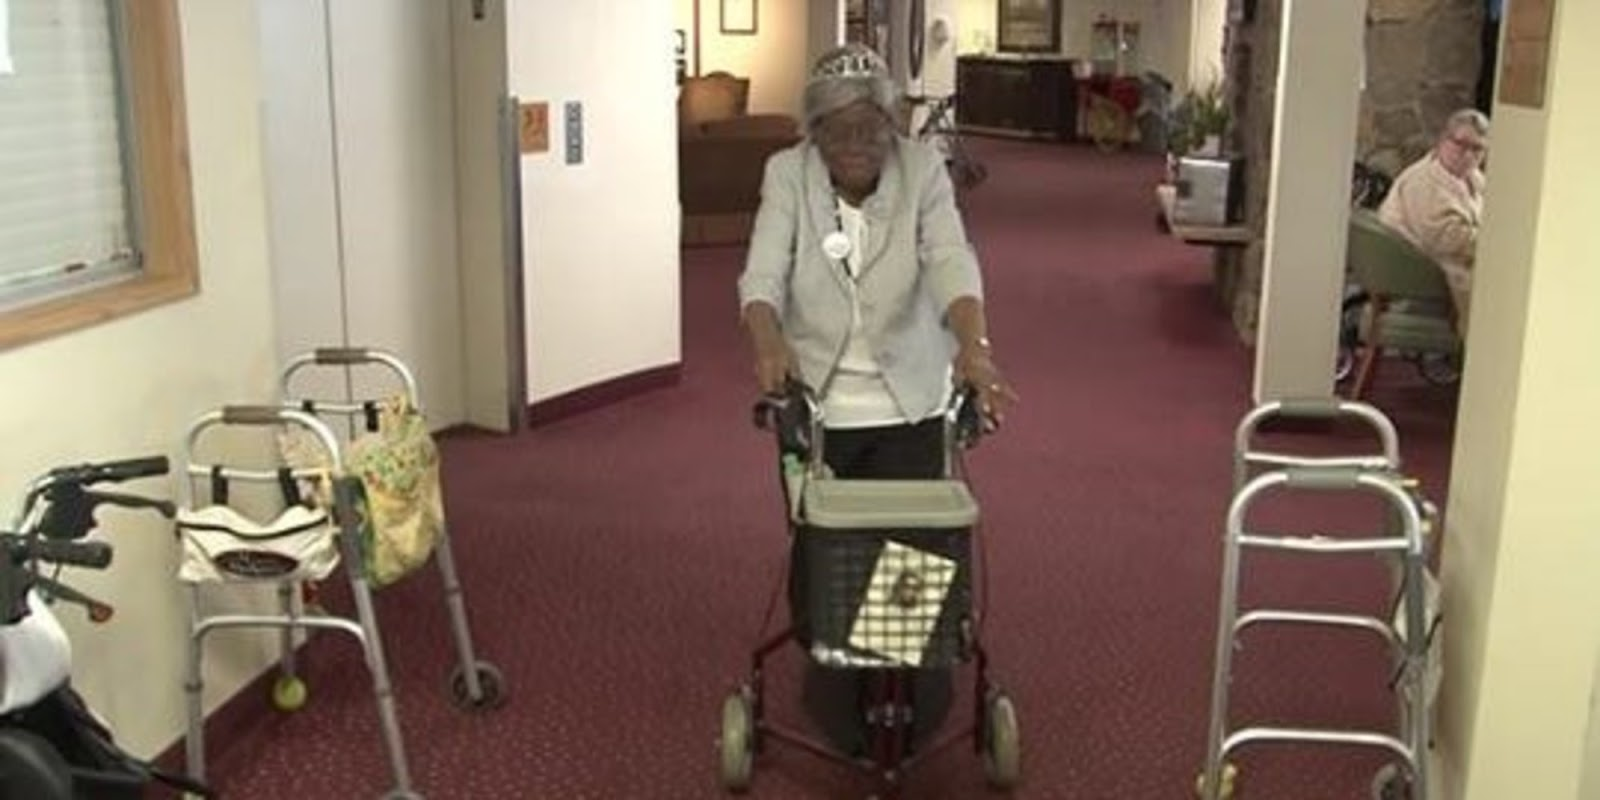 Woman Celebrates Her 100th Birthday By Running Down Her Living Center's Hall